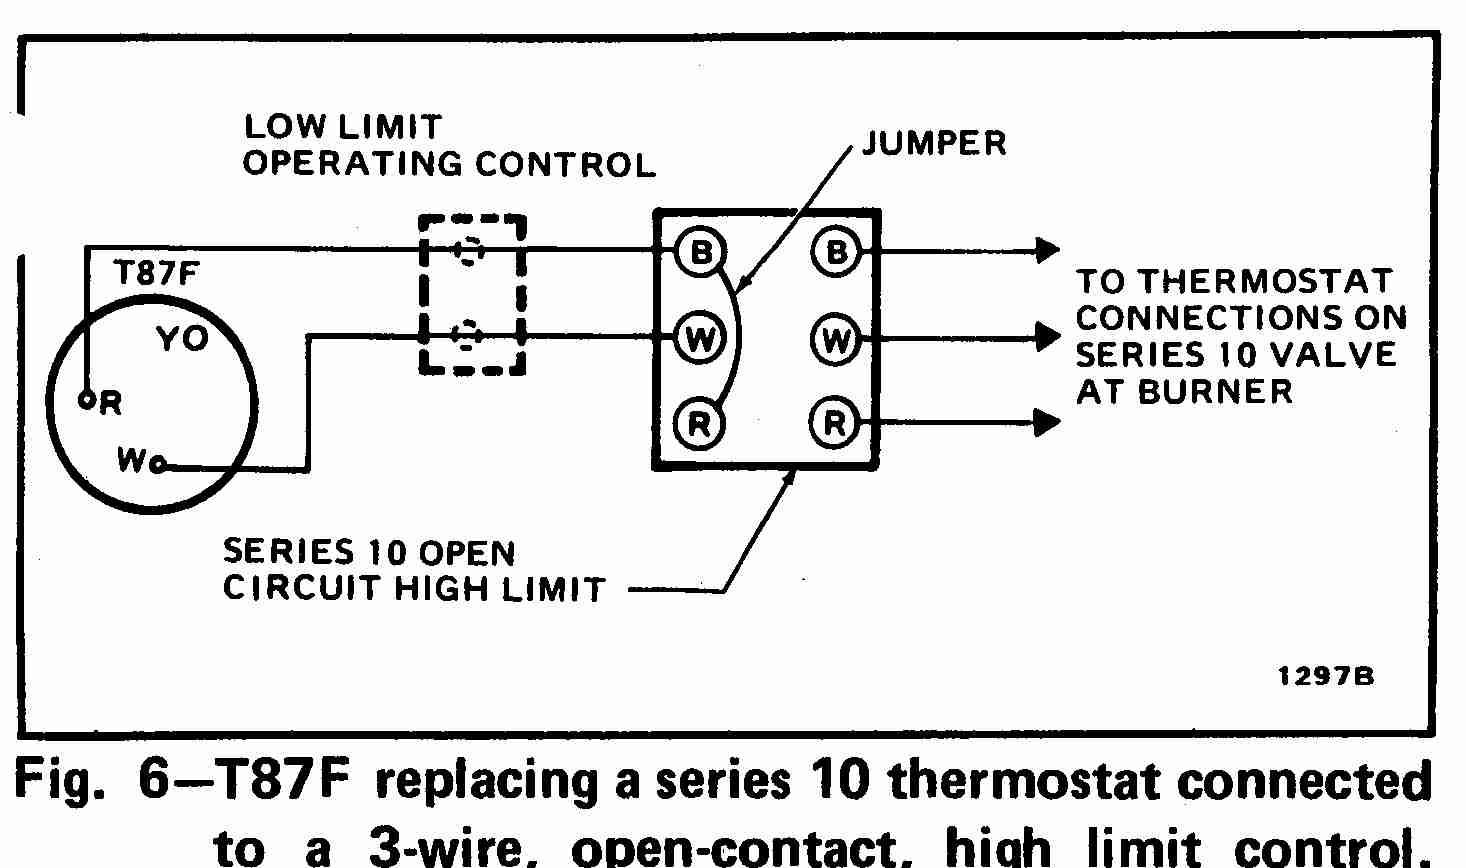 Honeywell Thermostat Rth3100C Wiring Diagram from inspectapedia.com